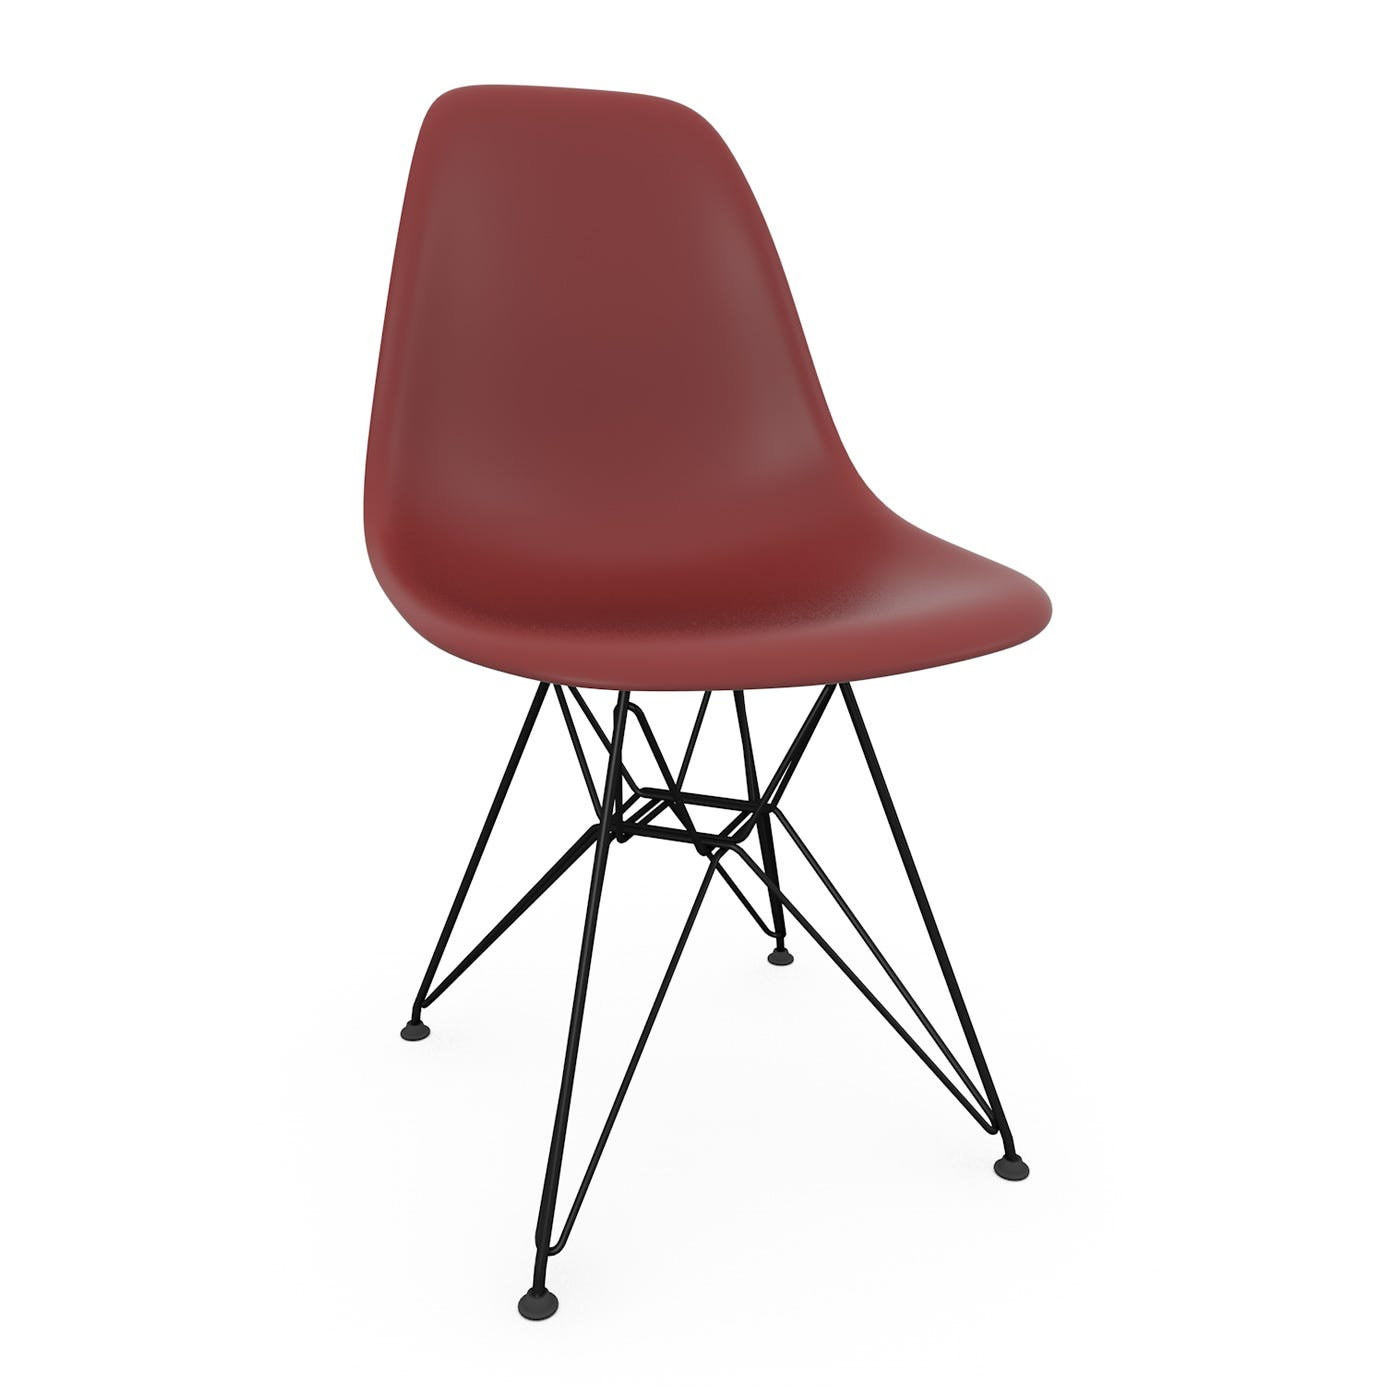 Eames DSR Chair New Height Oxide Red Basic Dark Legs